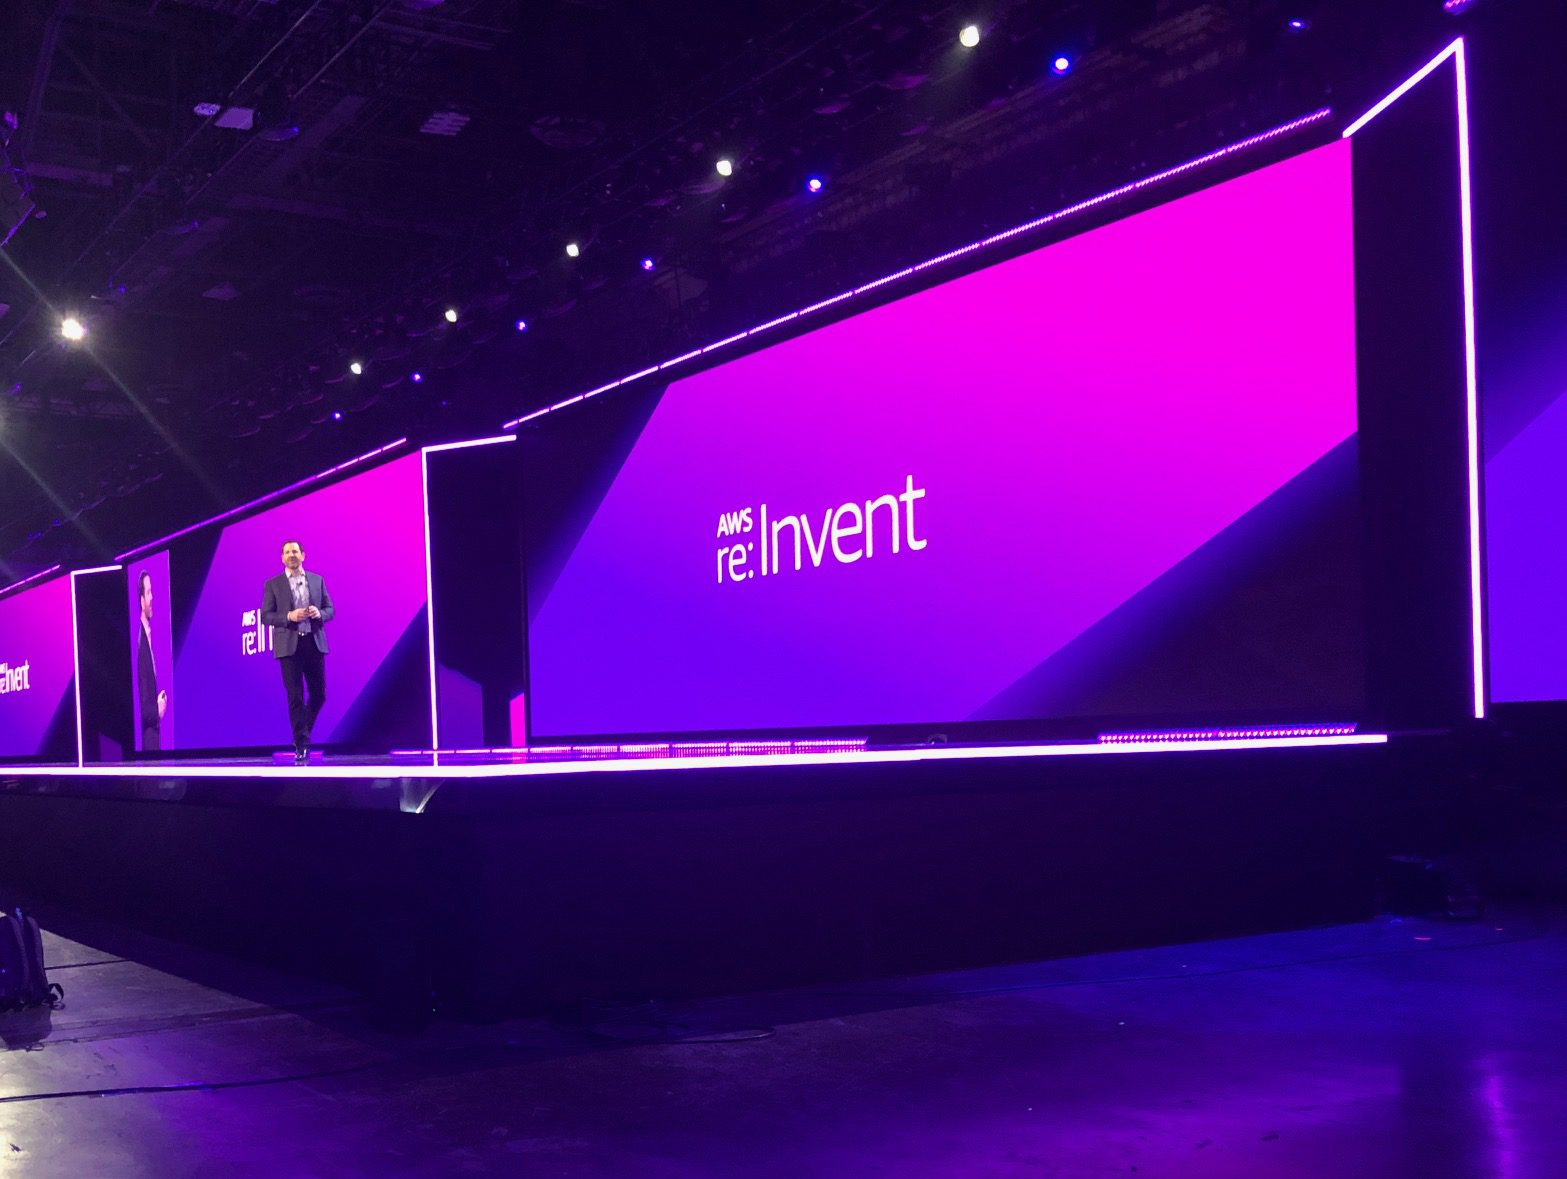 The Big Stage at re:invent 2018